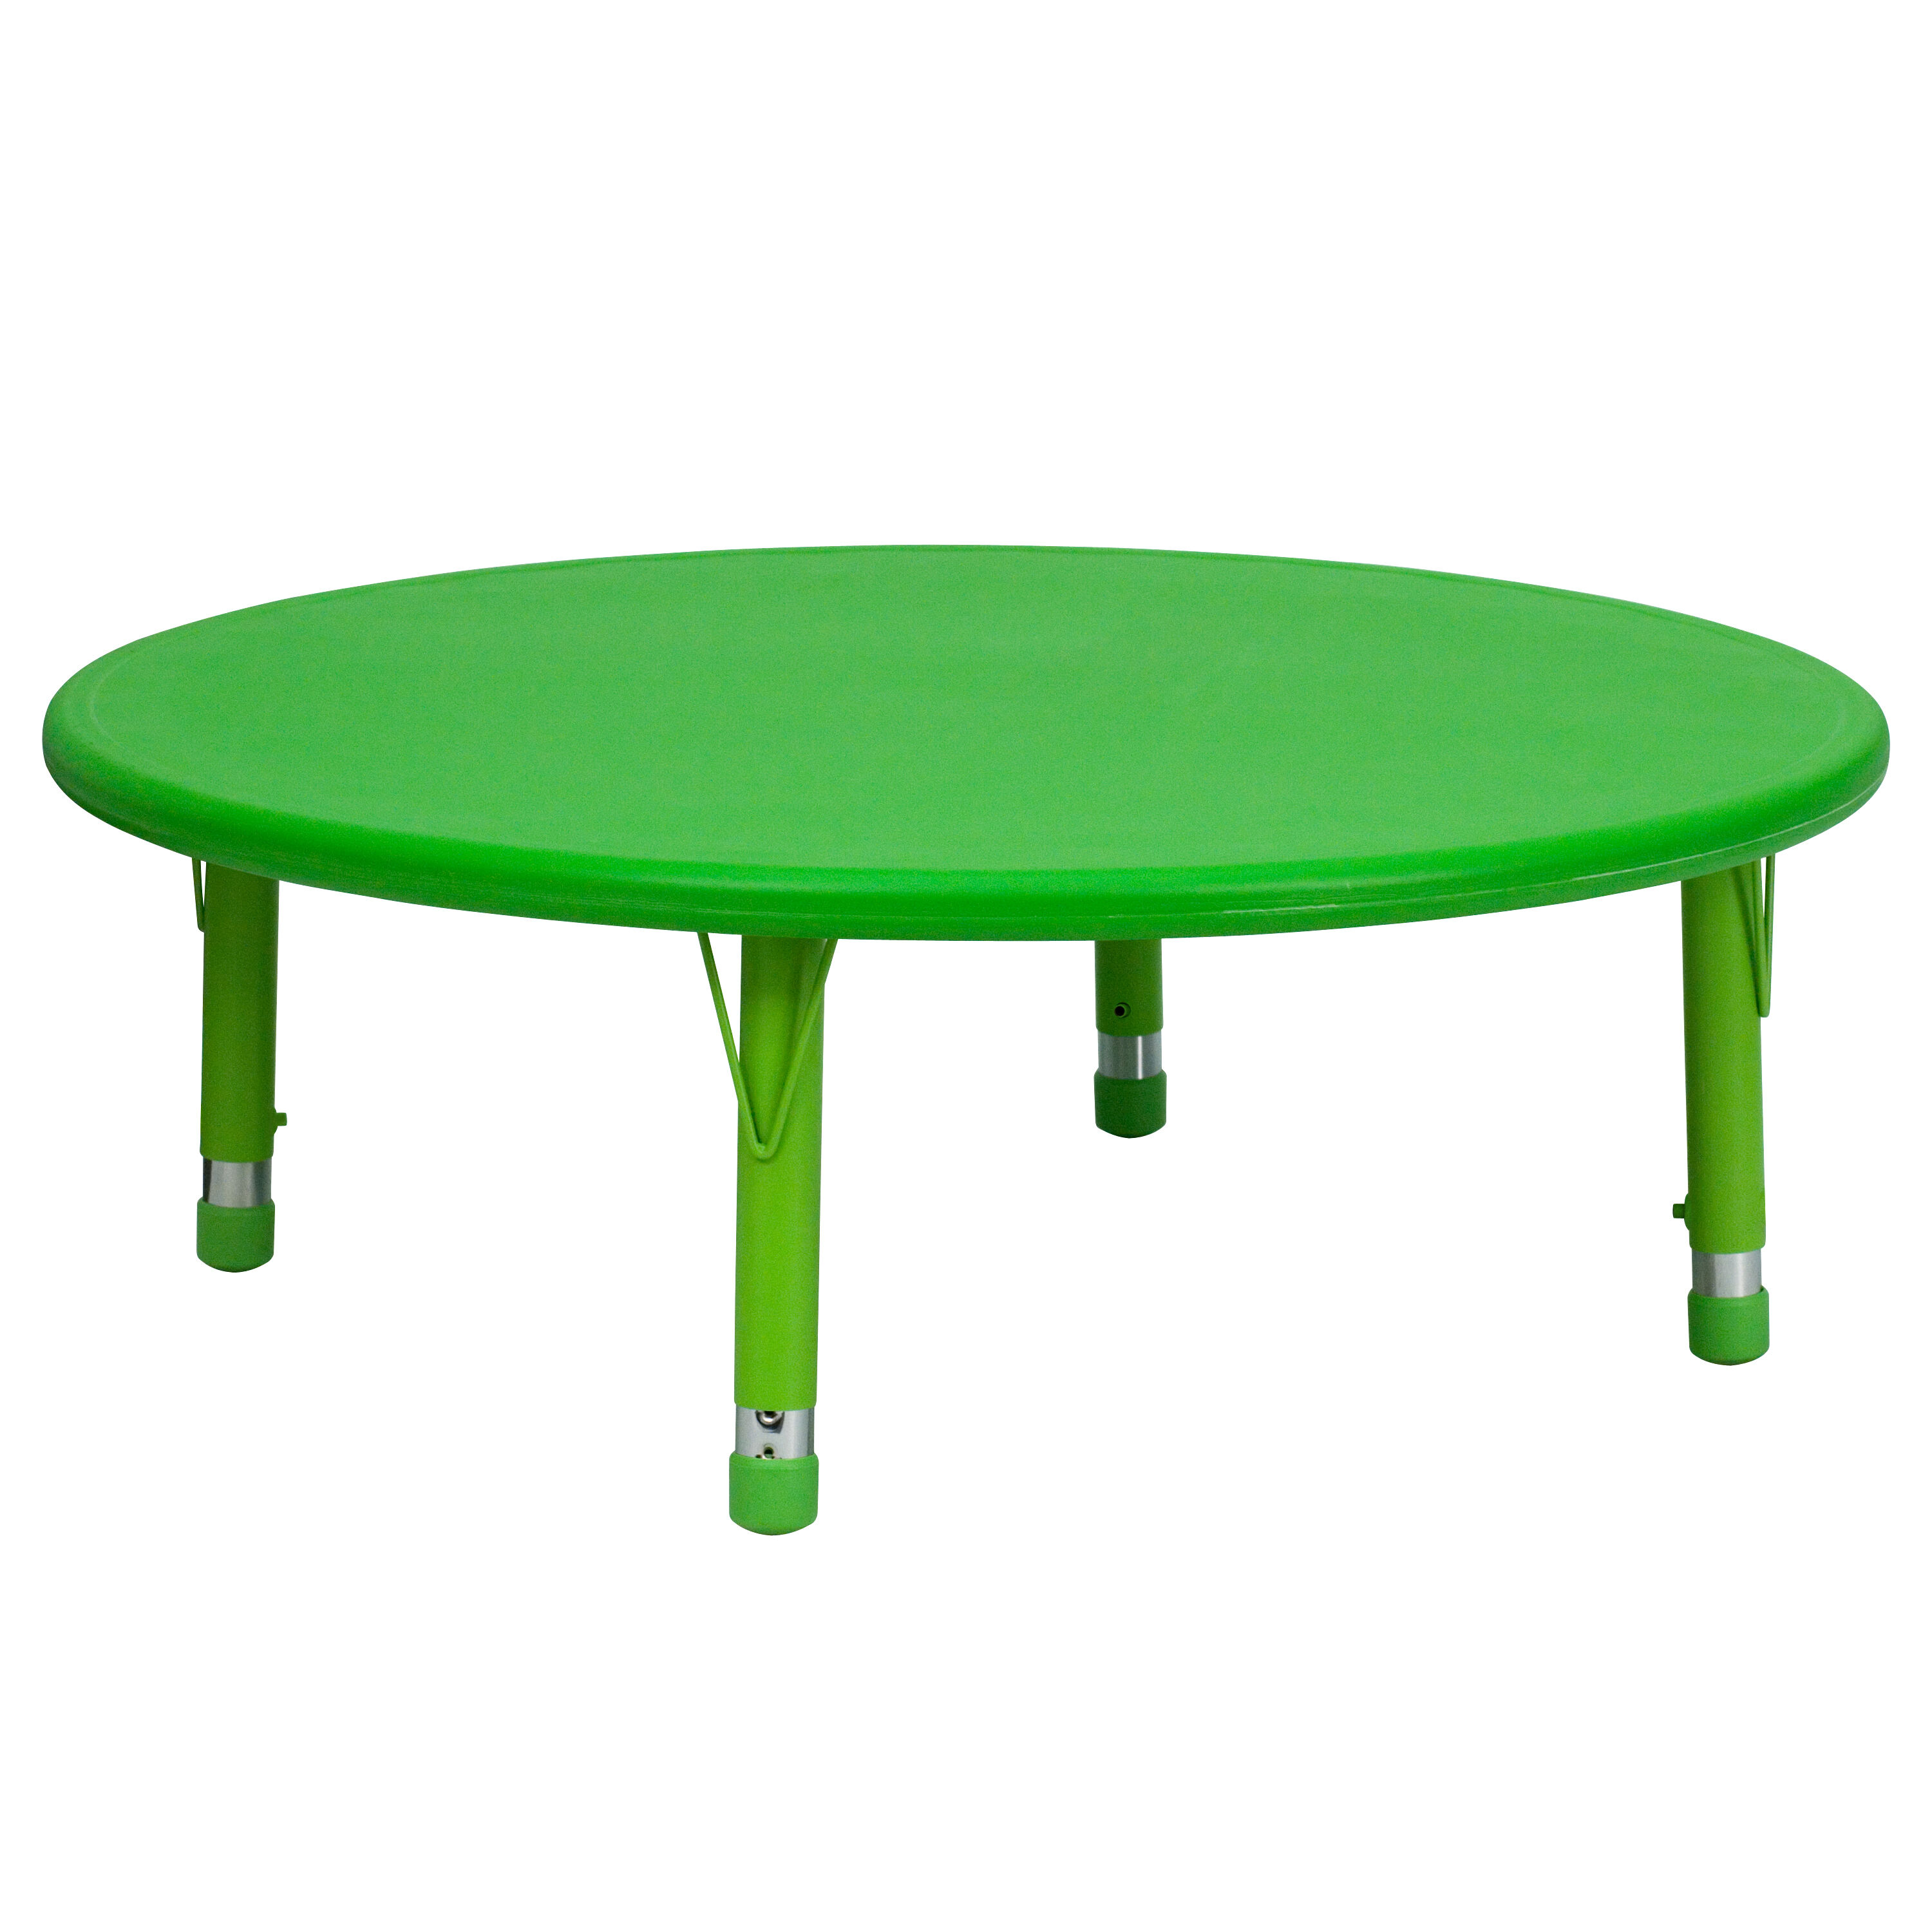 ... Our 45u0027u0027 Round Green Plastic Height Adjustable Activity Table Is On  Sale Now.